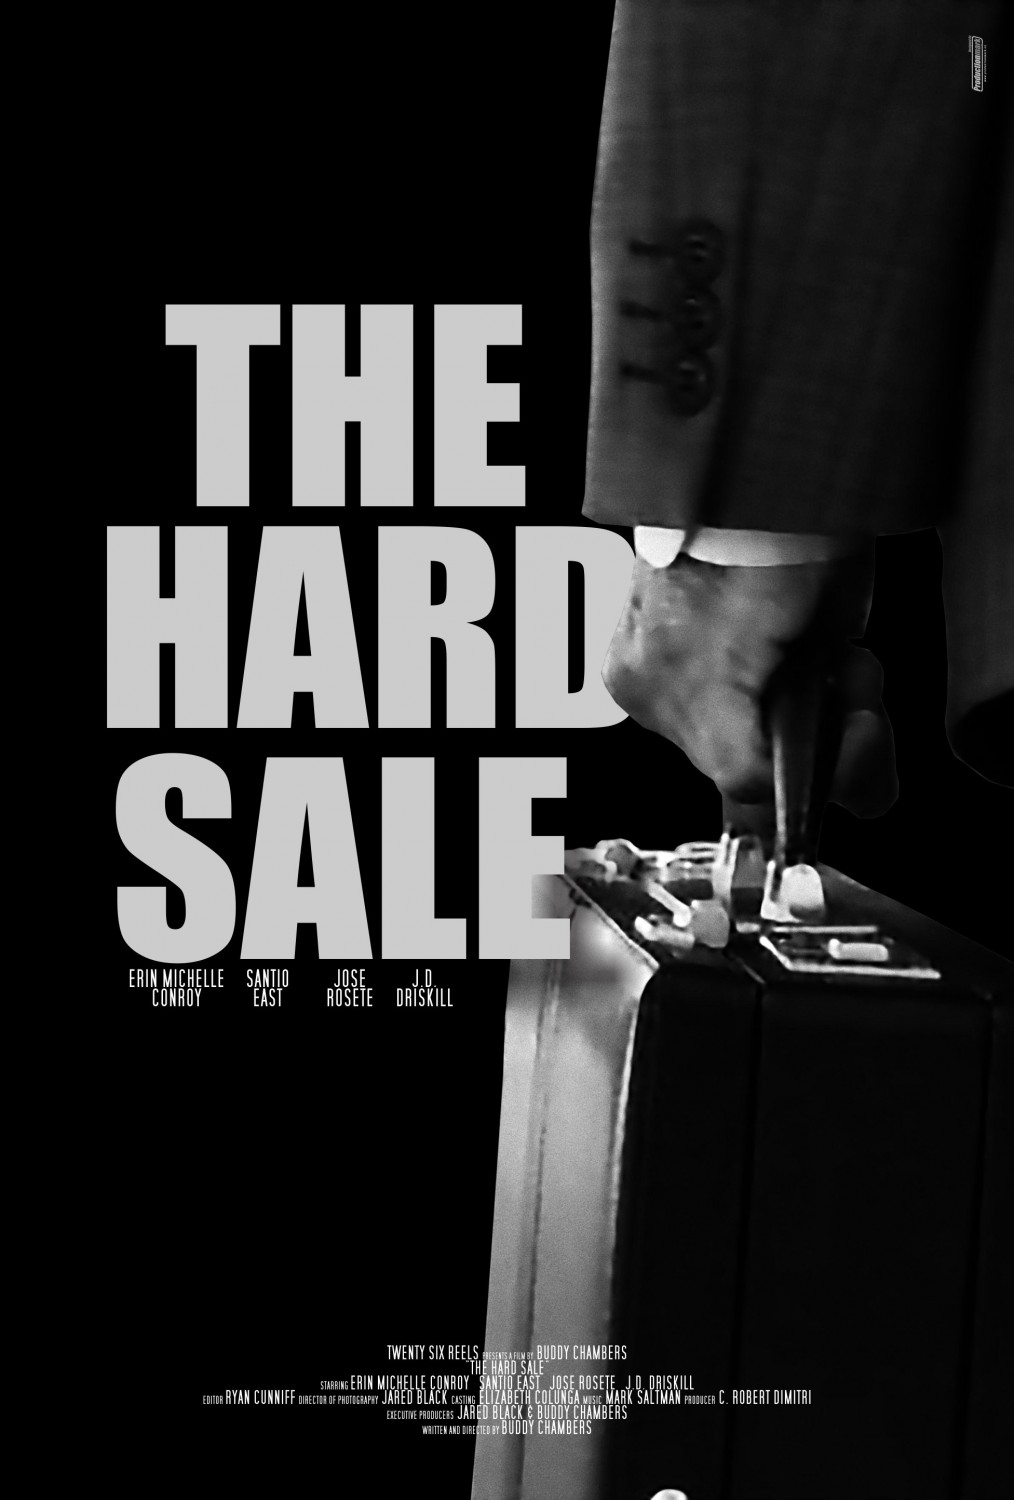 Productionmark-Services-Film-Poster-Design-Short-Film-The-Hard-Sale